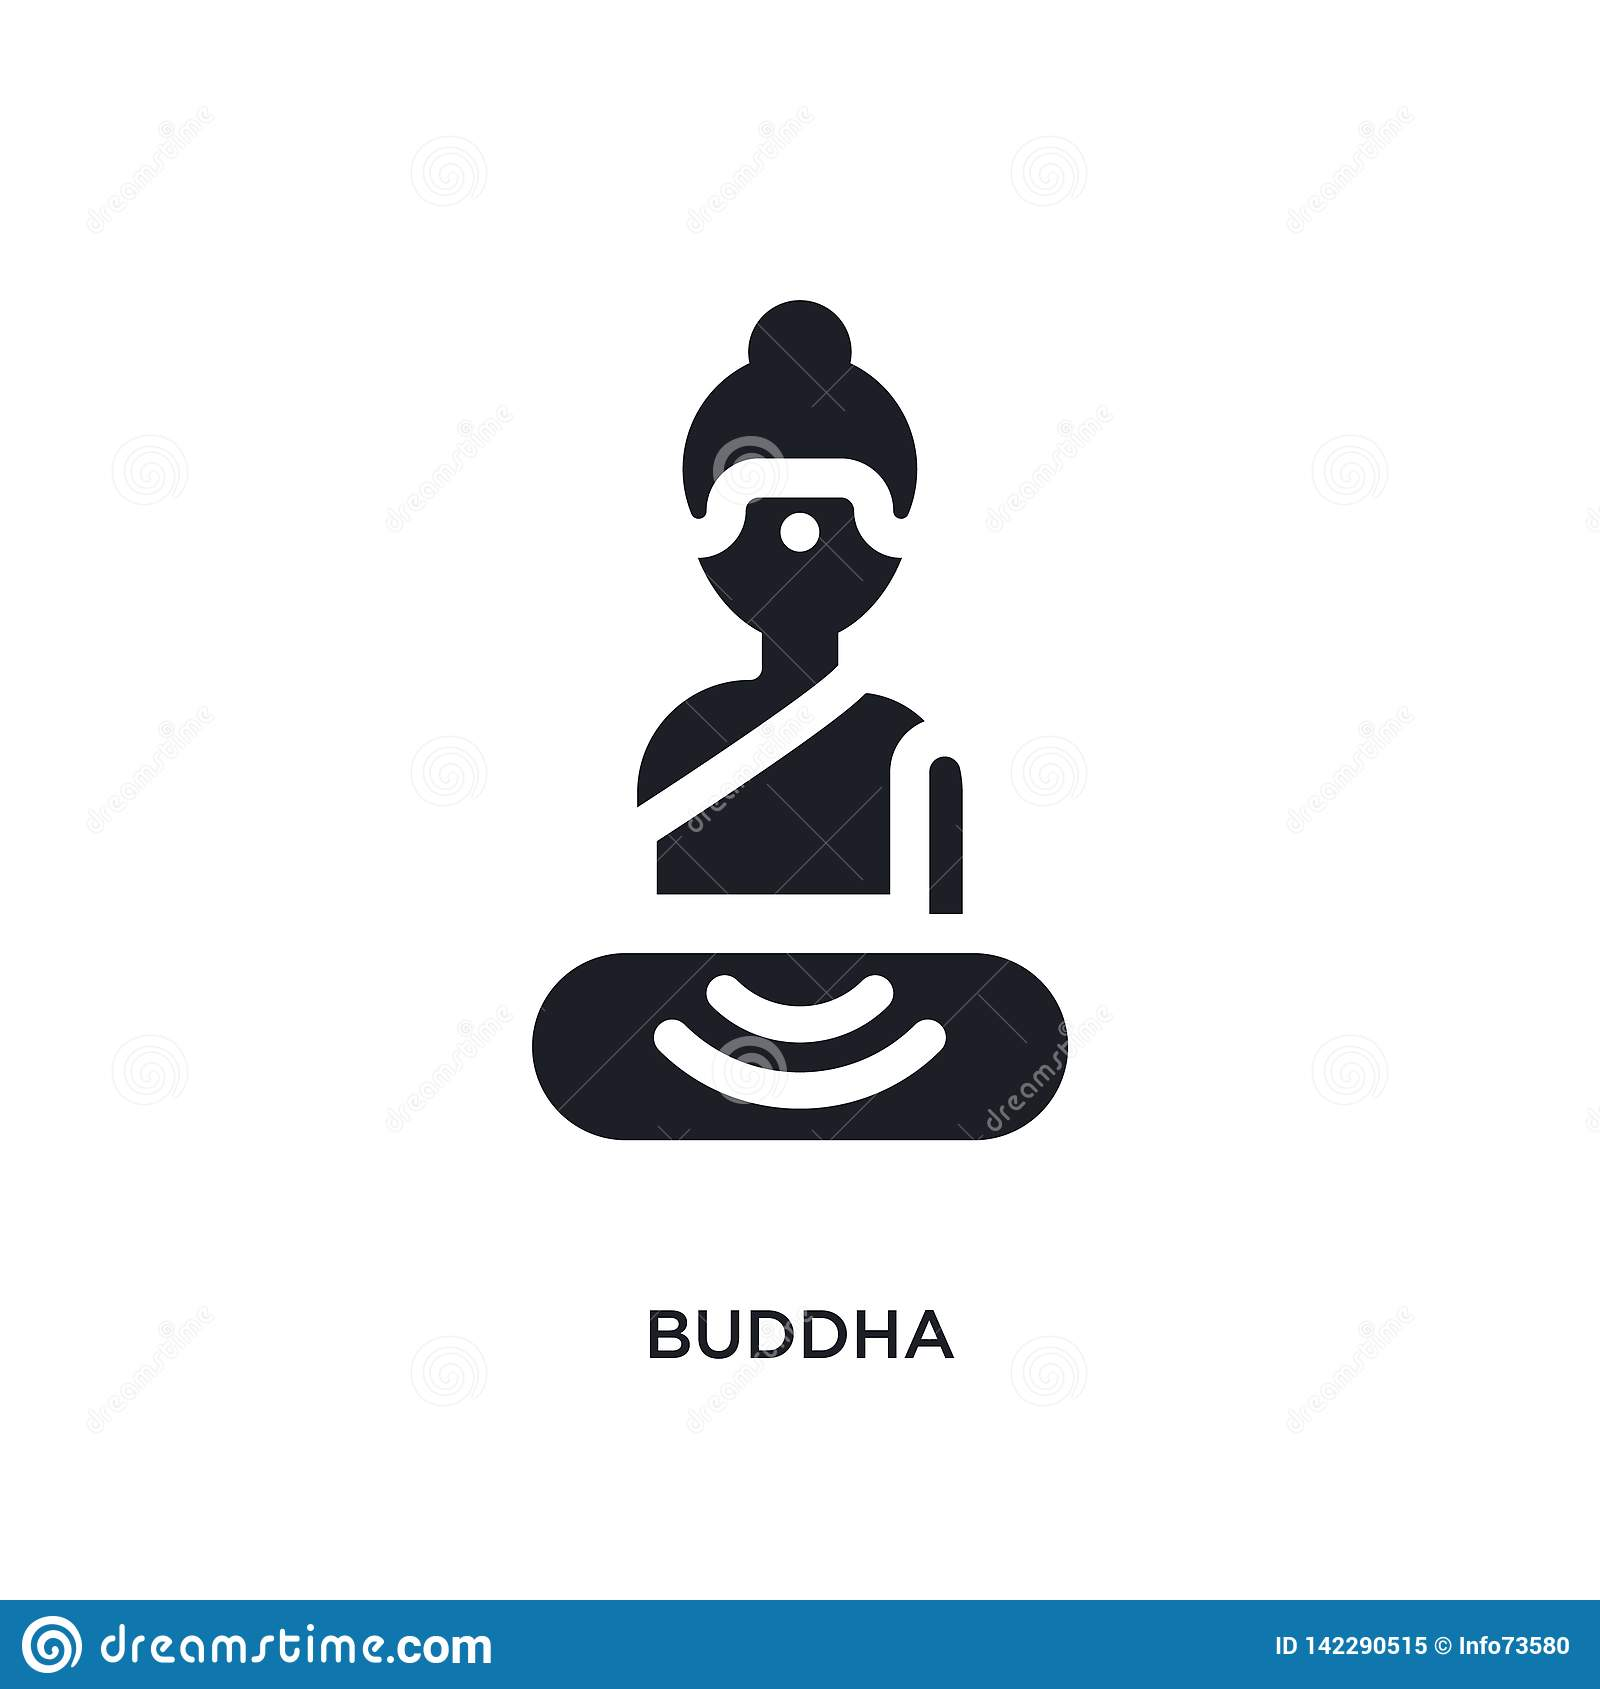 buddha isolated icon. simple element illustration from india and holi concept icons. buddha editable logo sign symbol design on